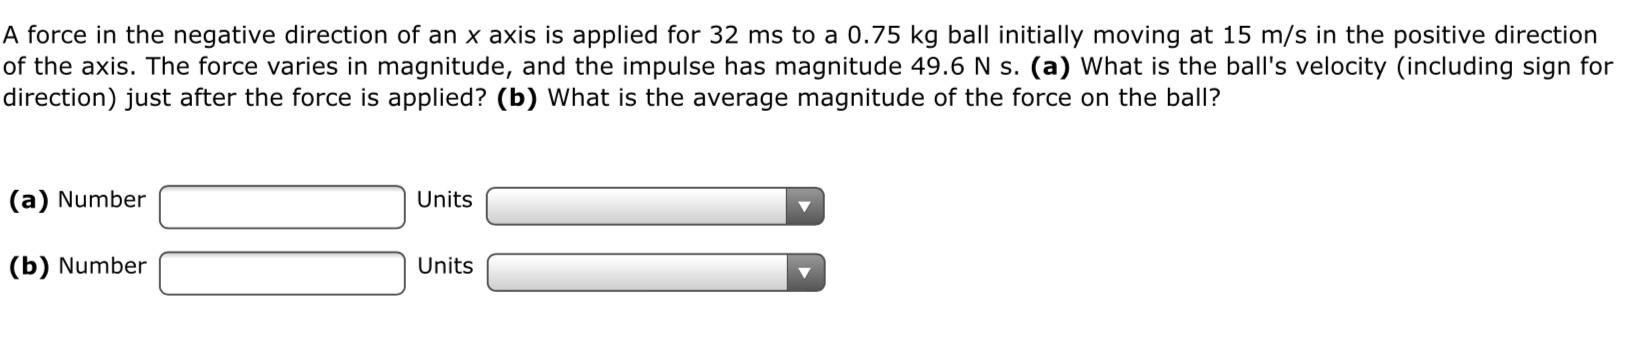 A force in the negative direction of an x axis is applied for 32 ms to a 0.75 kg ball initially moving at 15 m/s in the positive direction of the axis. The force varies in magnitude, and the impulse has magnitude 49.6 N s. (a) What is the ball's velocity (including sign for direction) just after the force is applied? (b) What is the average magnitude of the force on the ball? (a) Number Units (b) Number Units